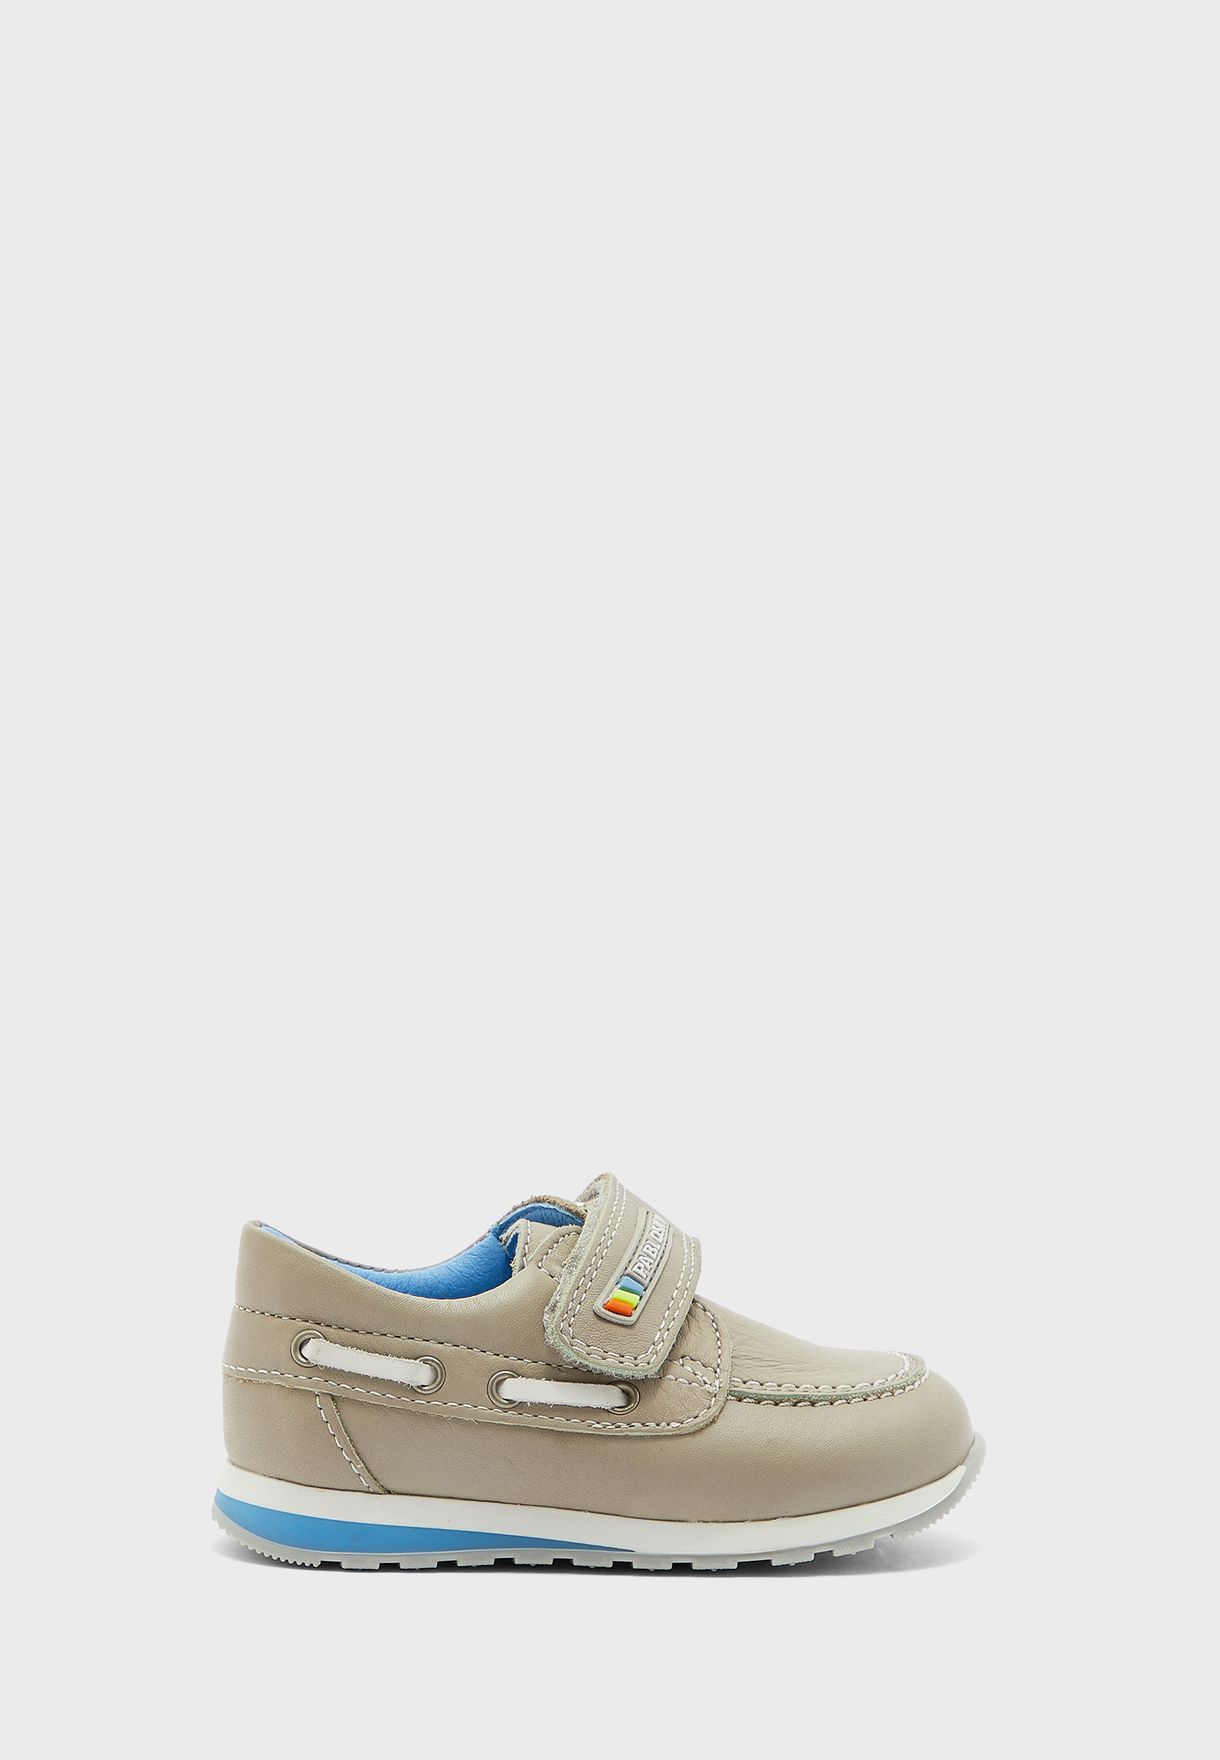 Kids Casual Slip On